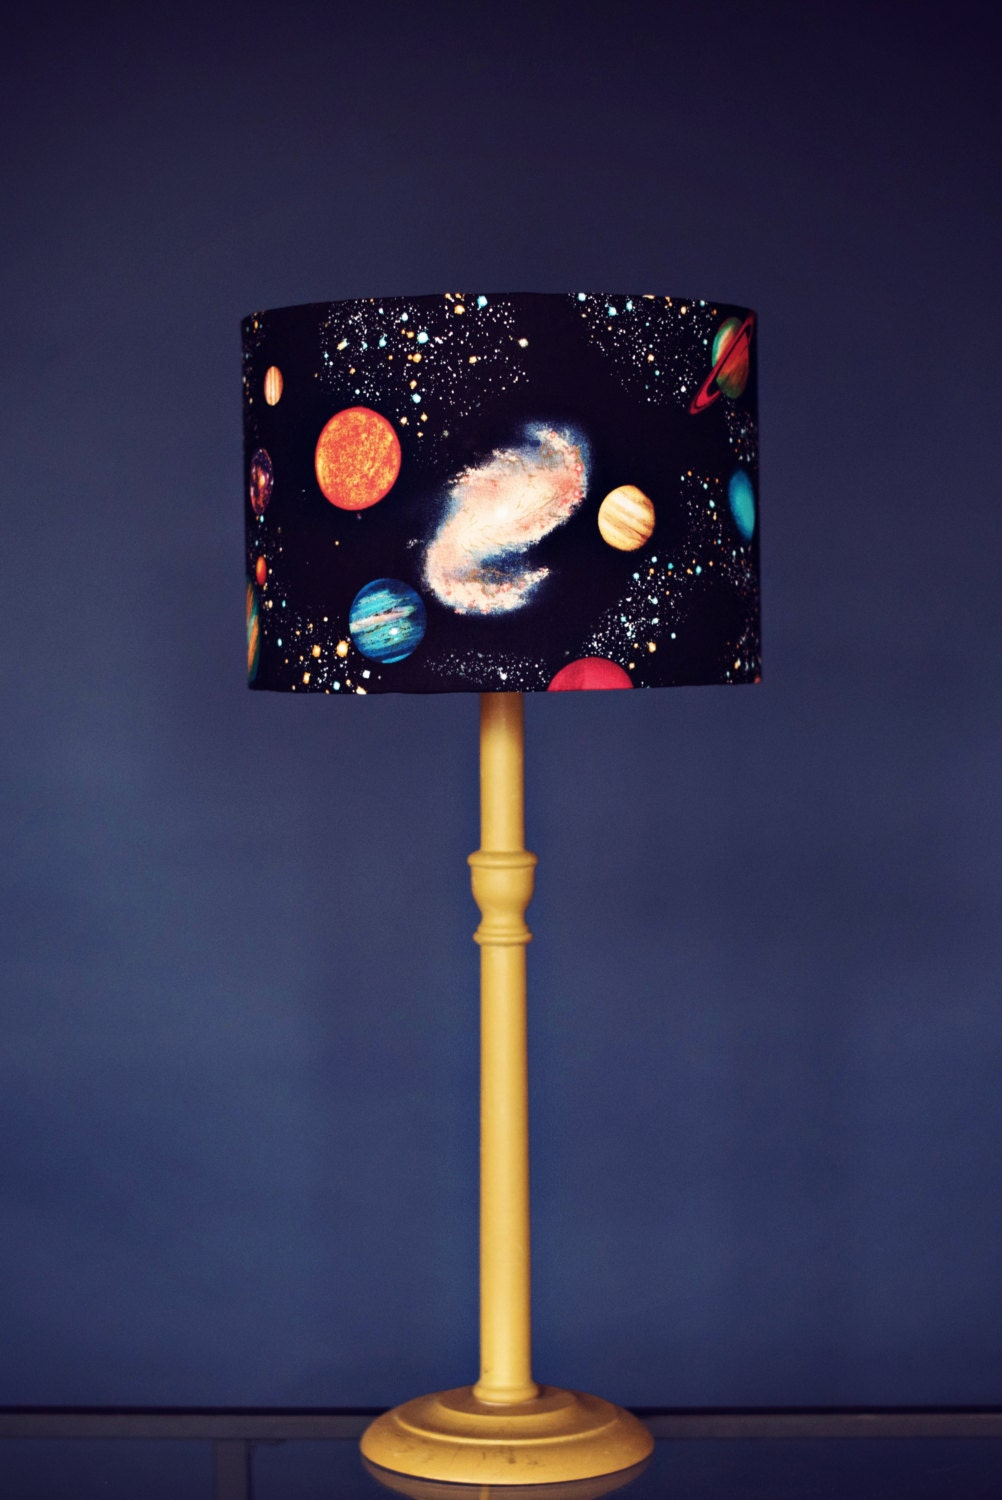 Childrens Wall Lamp Shades : Planet lampshade stars lamp shade space birthday gift kids